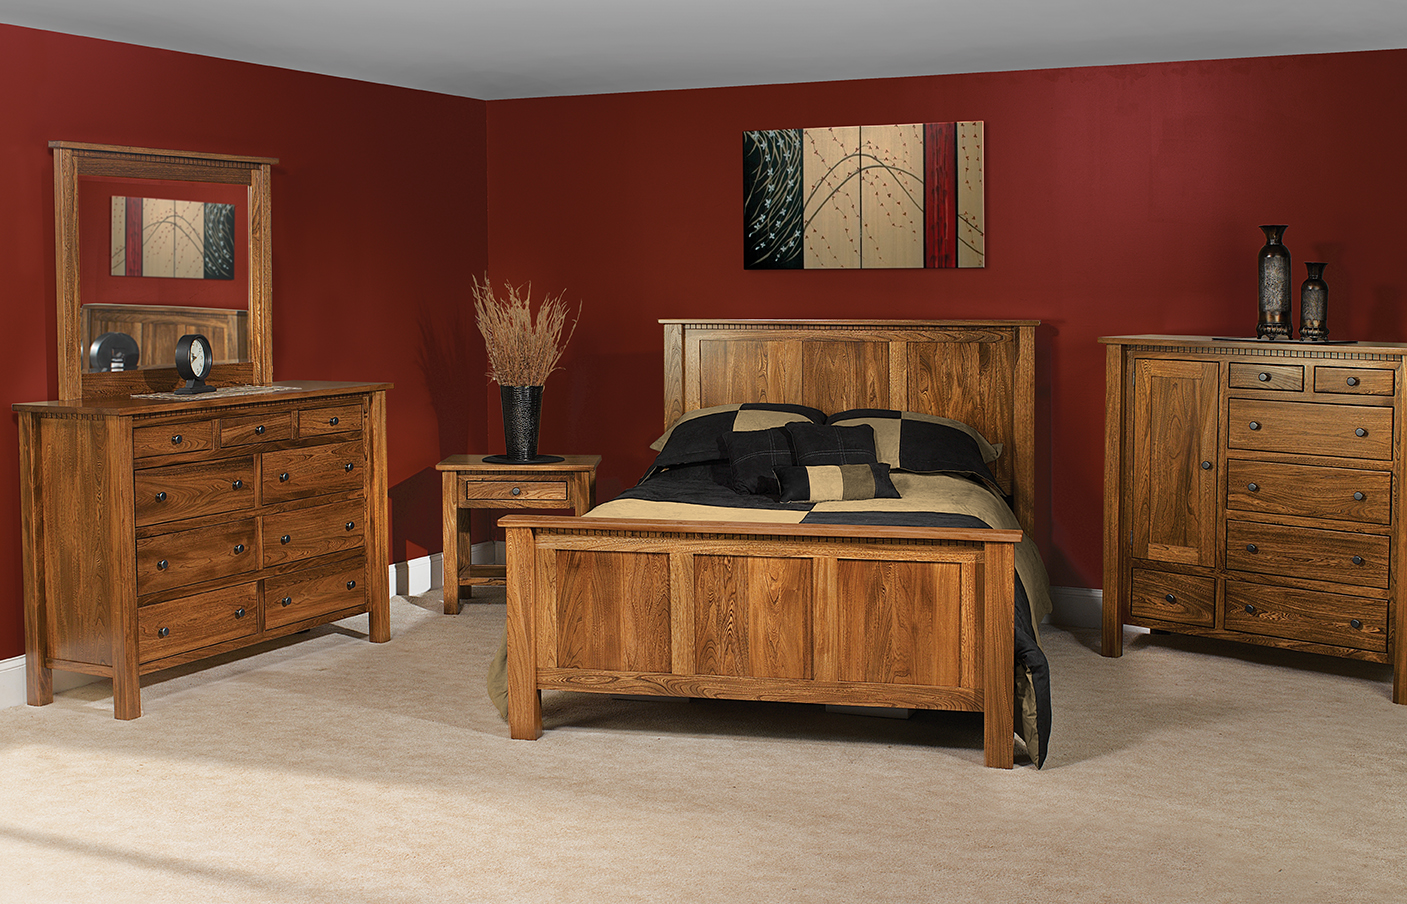 Bedroom Usa Made Furniture Amishusa Furntiure Leather Your Amish Connection